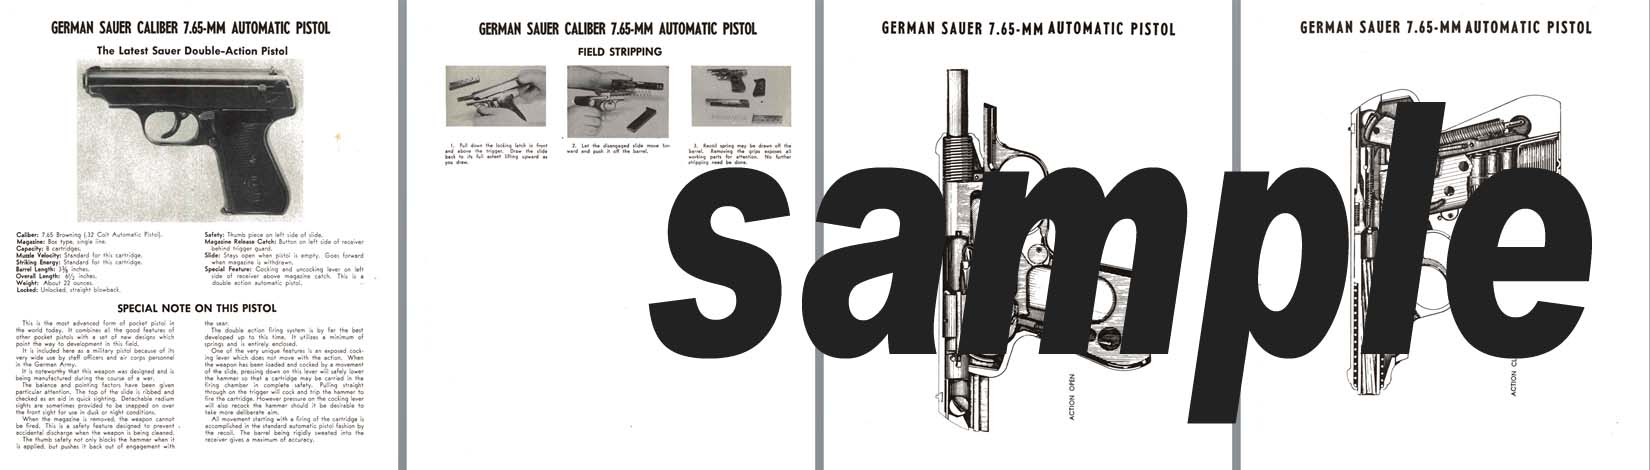 Sauer (German) Caliber 7.65mm Automatic Pistol Manual